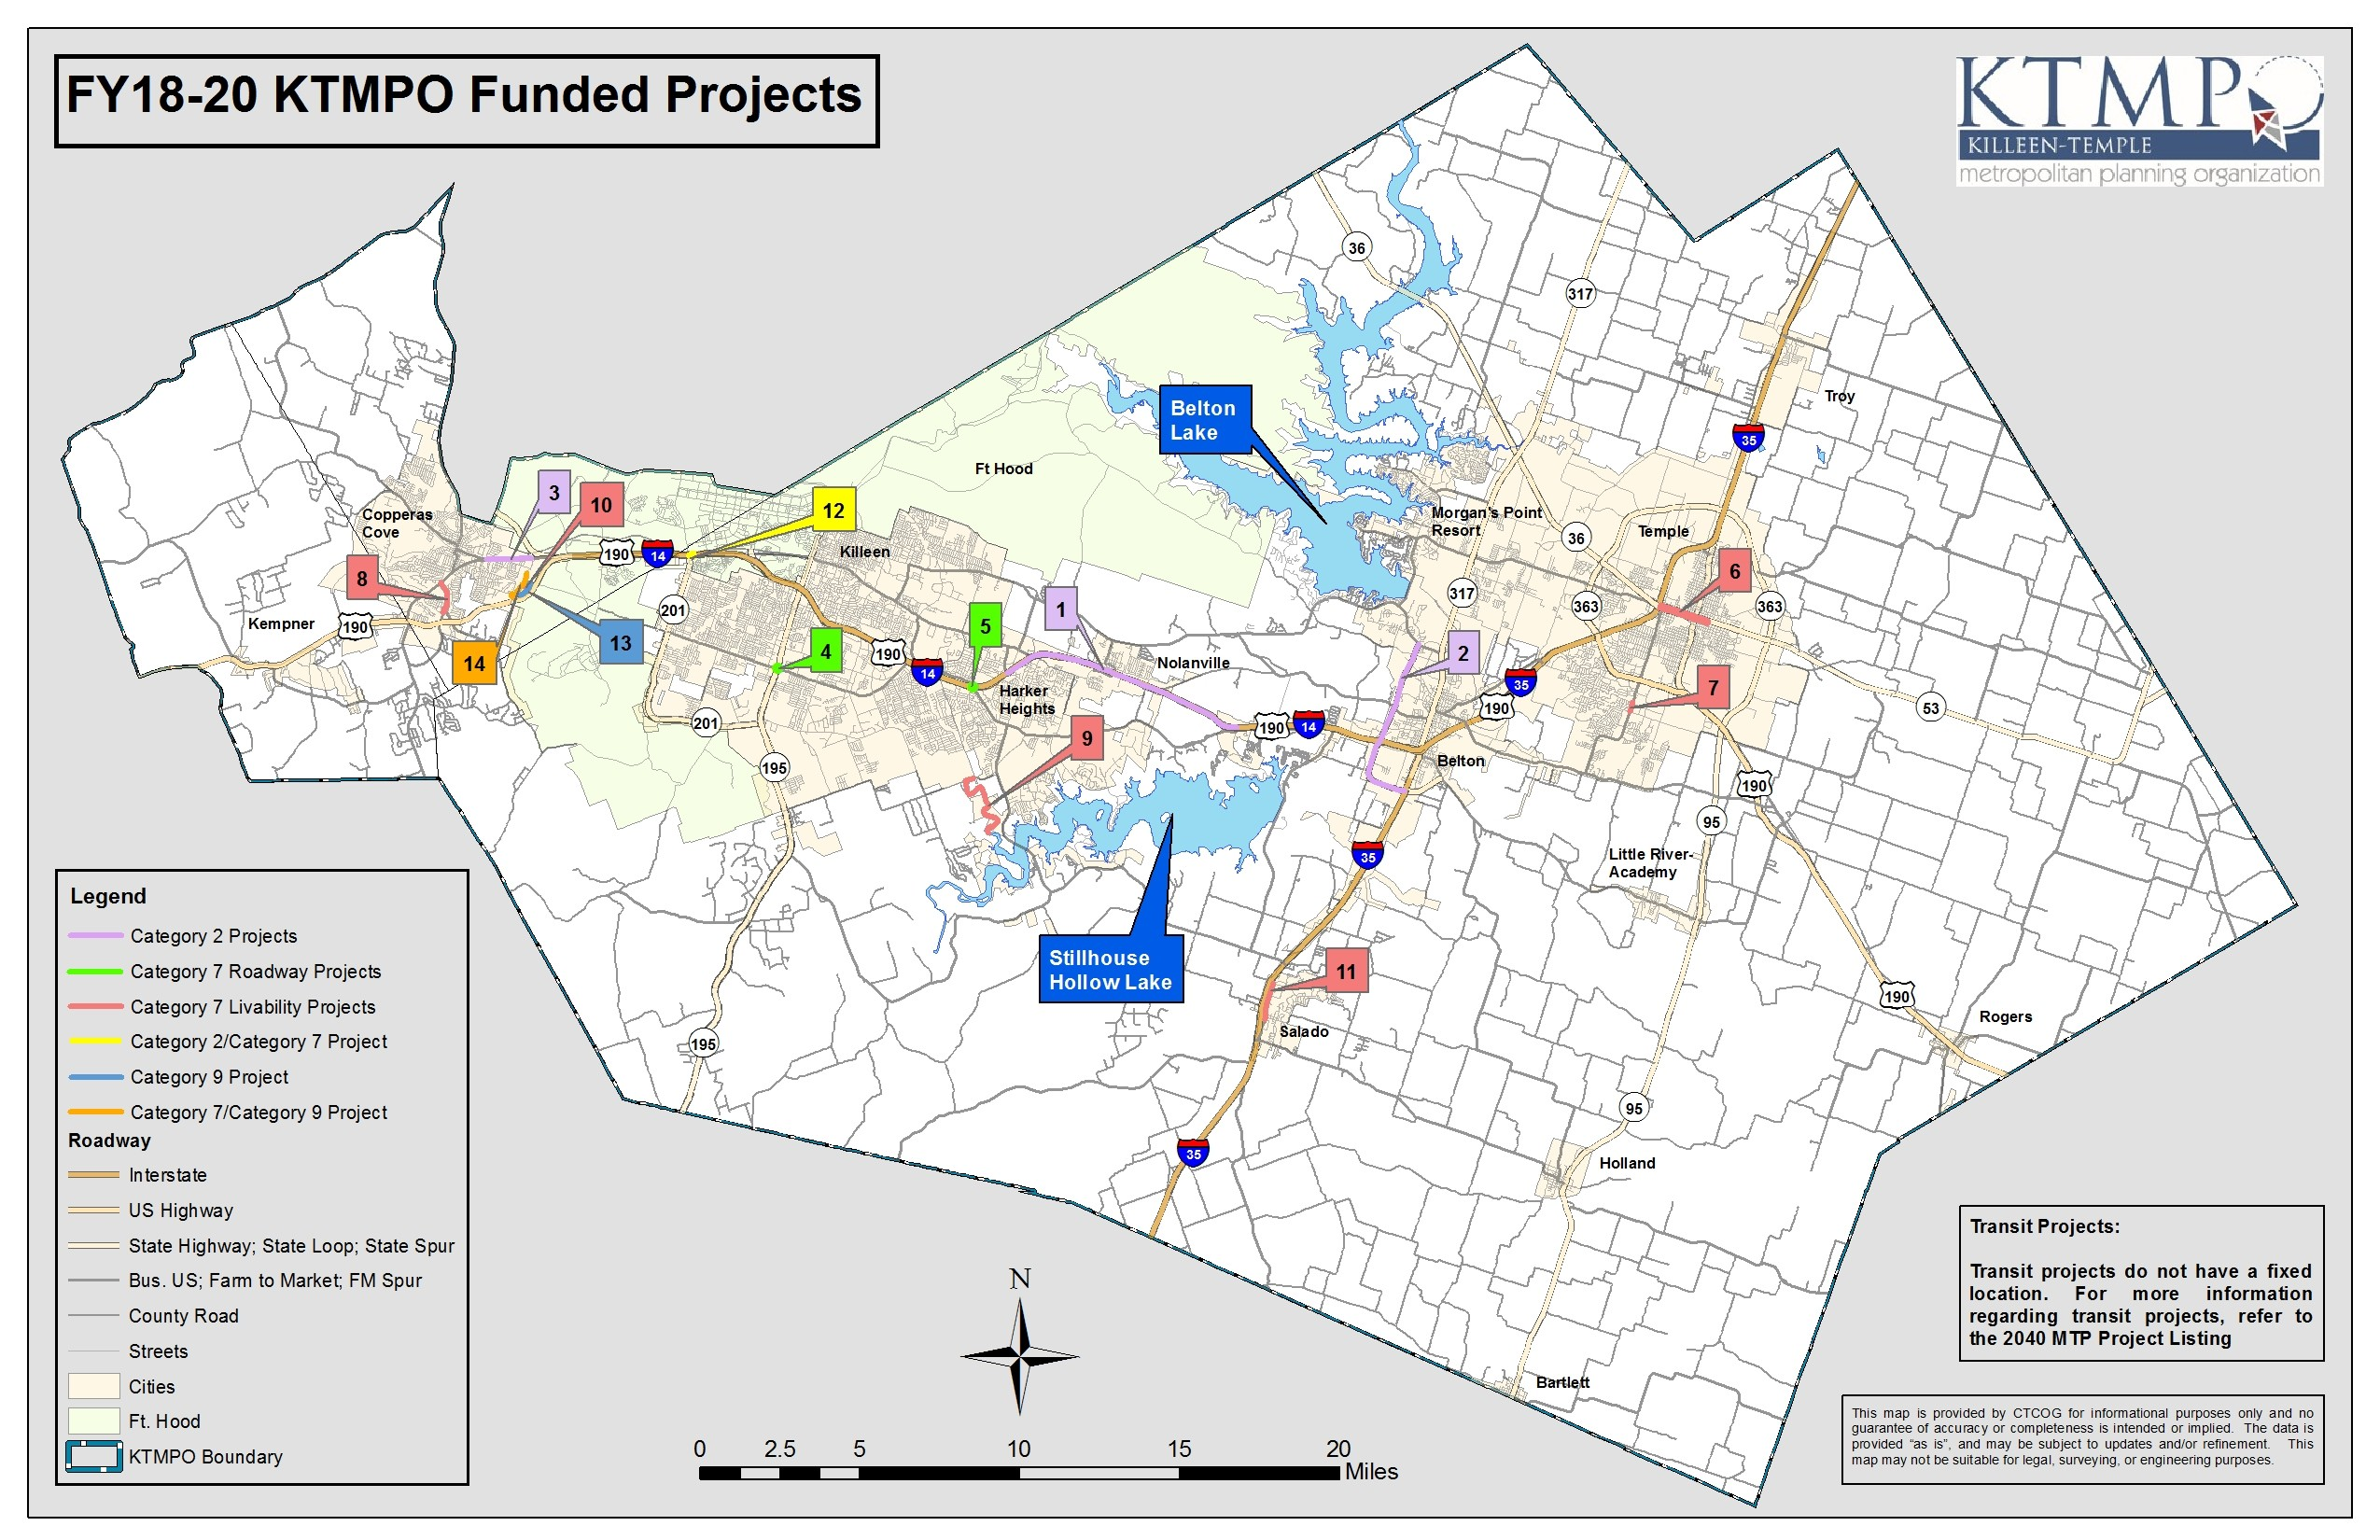 FY18-20 Funded Projects